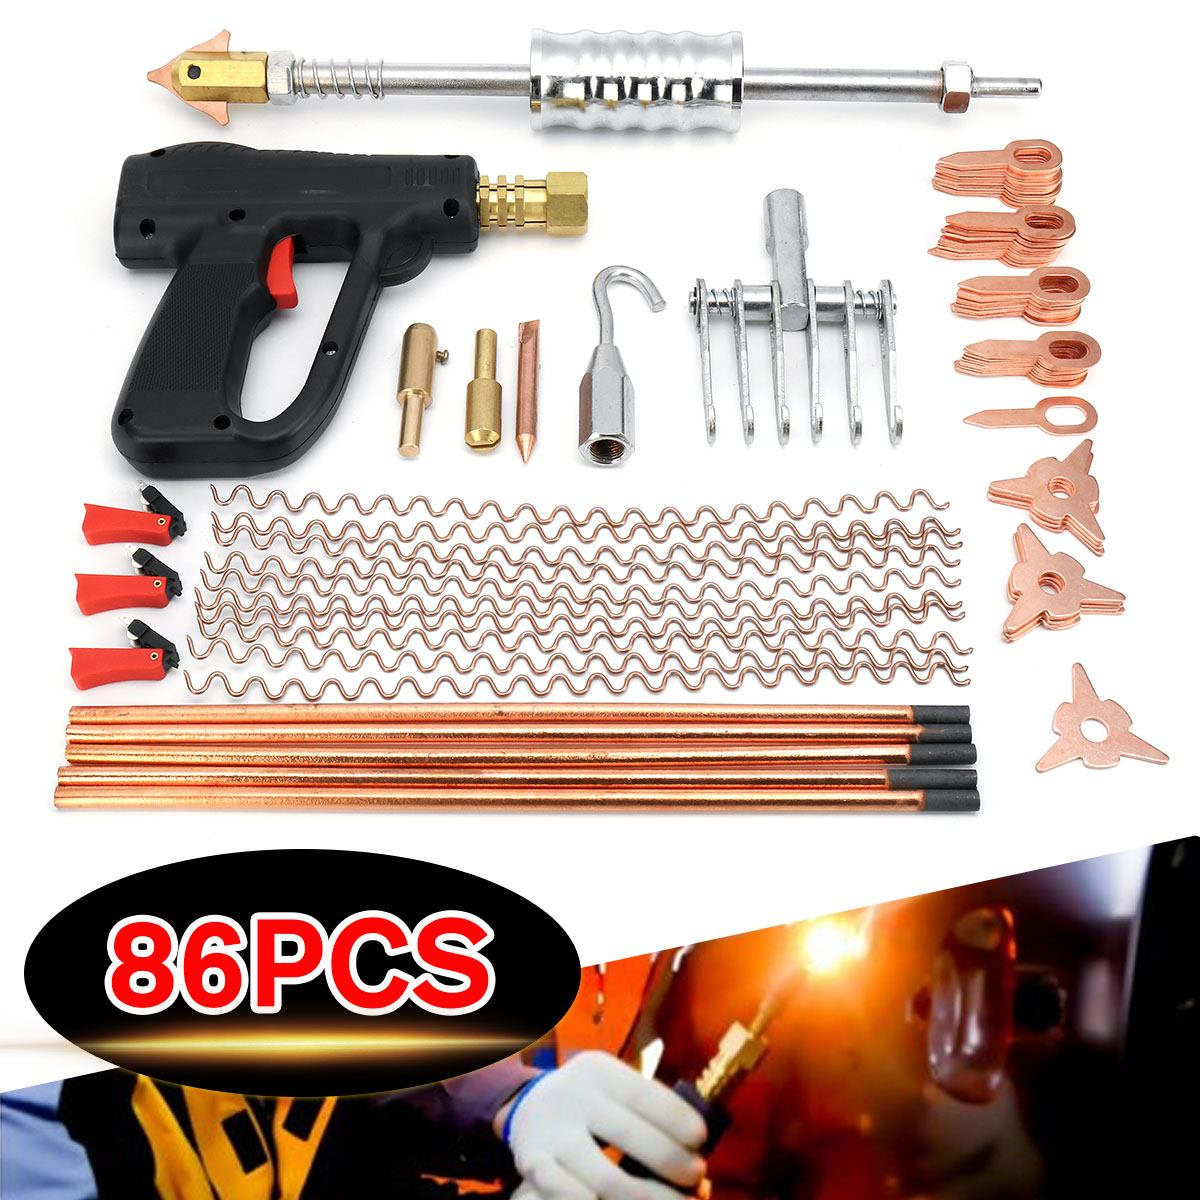 86pcs 1 Set Car Body Dent Repair Puller Kit Dent Spot Removal Repair Tool Kit Device Welder Stud Welding Machine Pulling Hammer